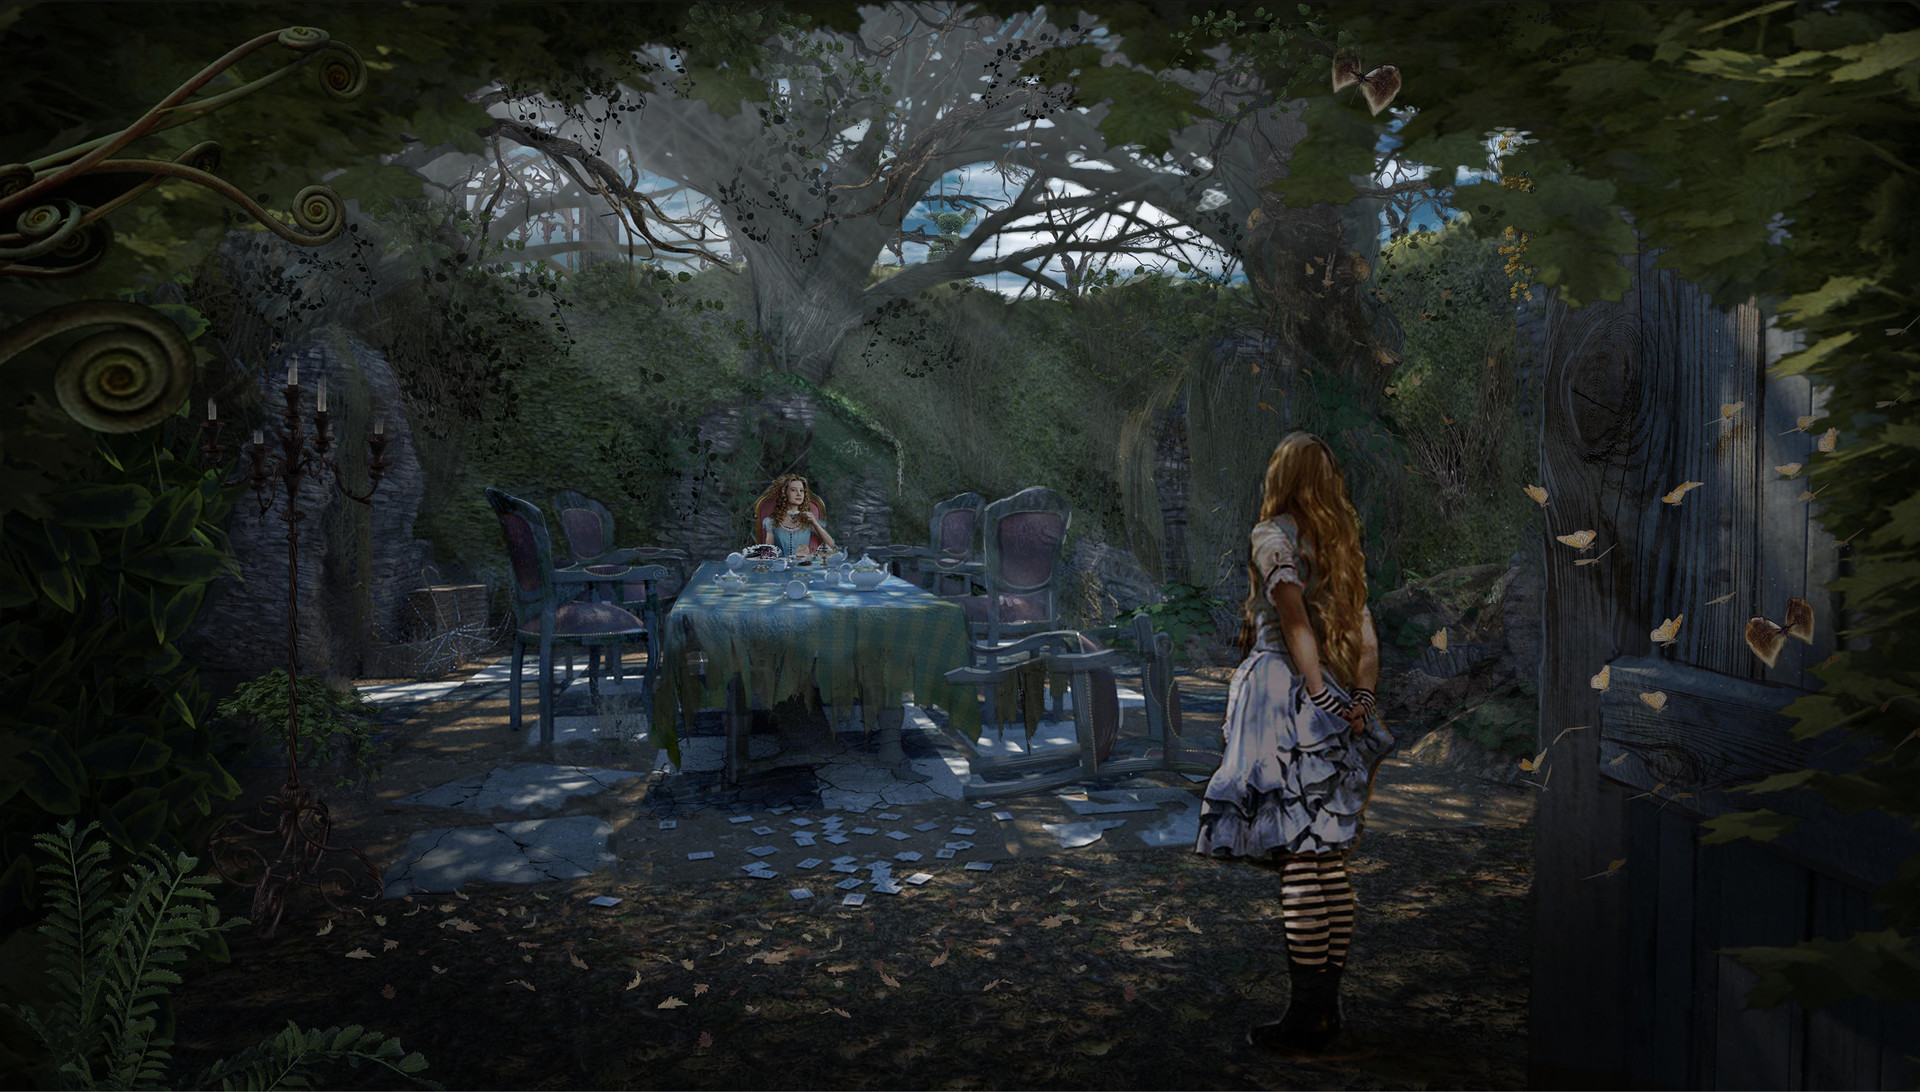 Wonderland Tea Party Concept for  ABC's Once Upon a Time Season 7 - 3D Geo / Rendering Chad Harms